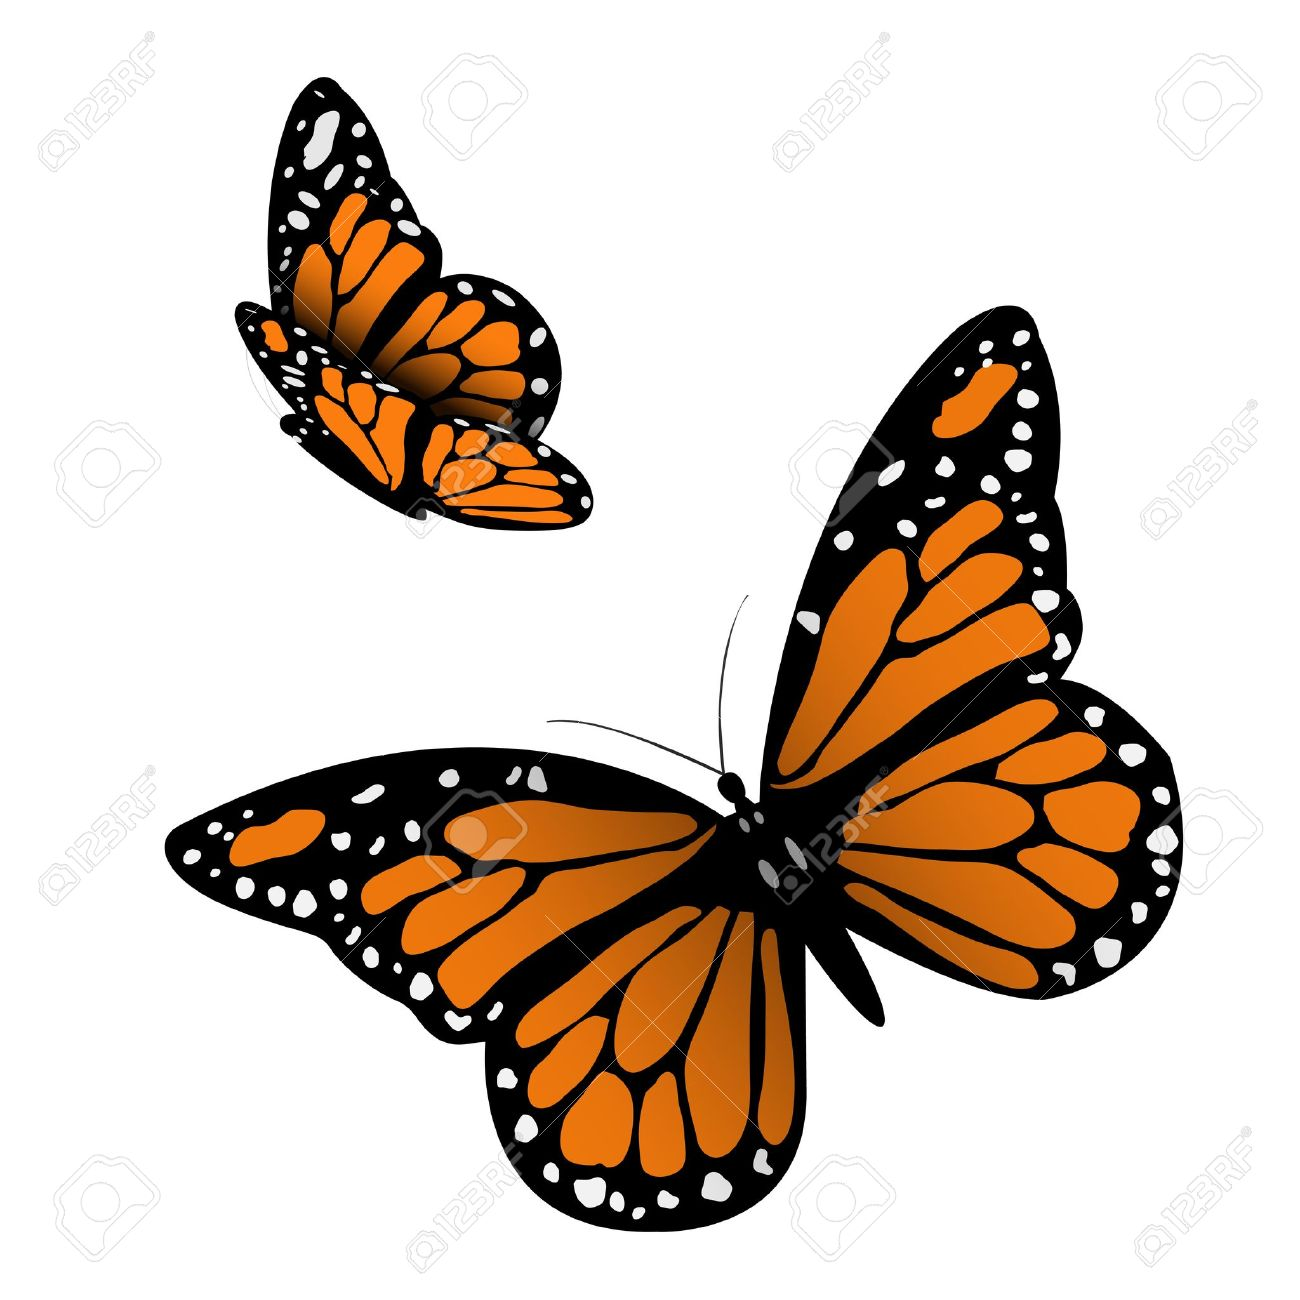 monarch butterfly illustration royalty free cliparts vectors and rh 123rf com animated butterfly clipart free butterfly free clipart